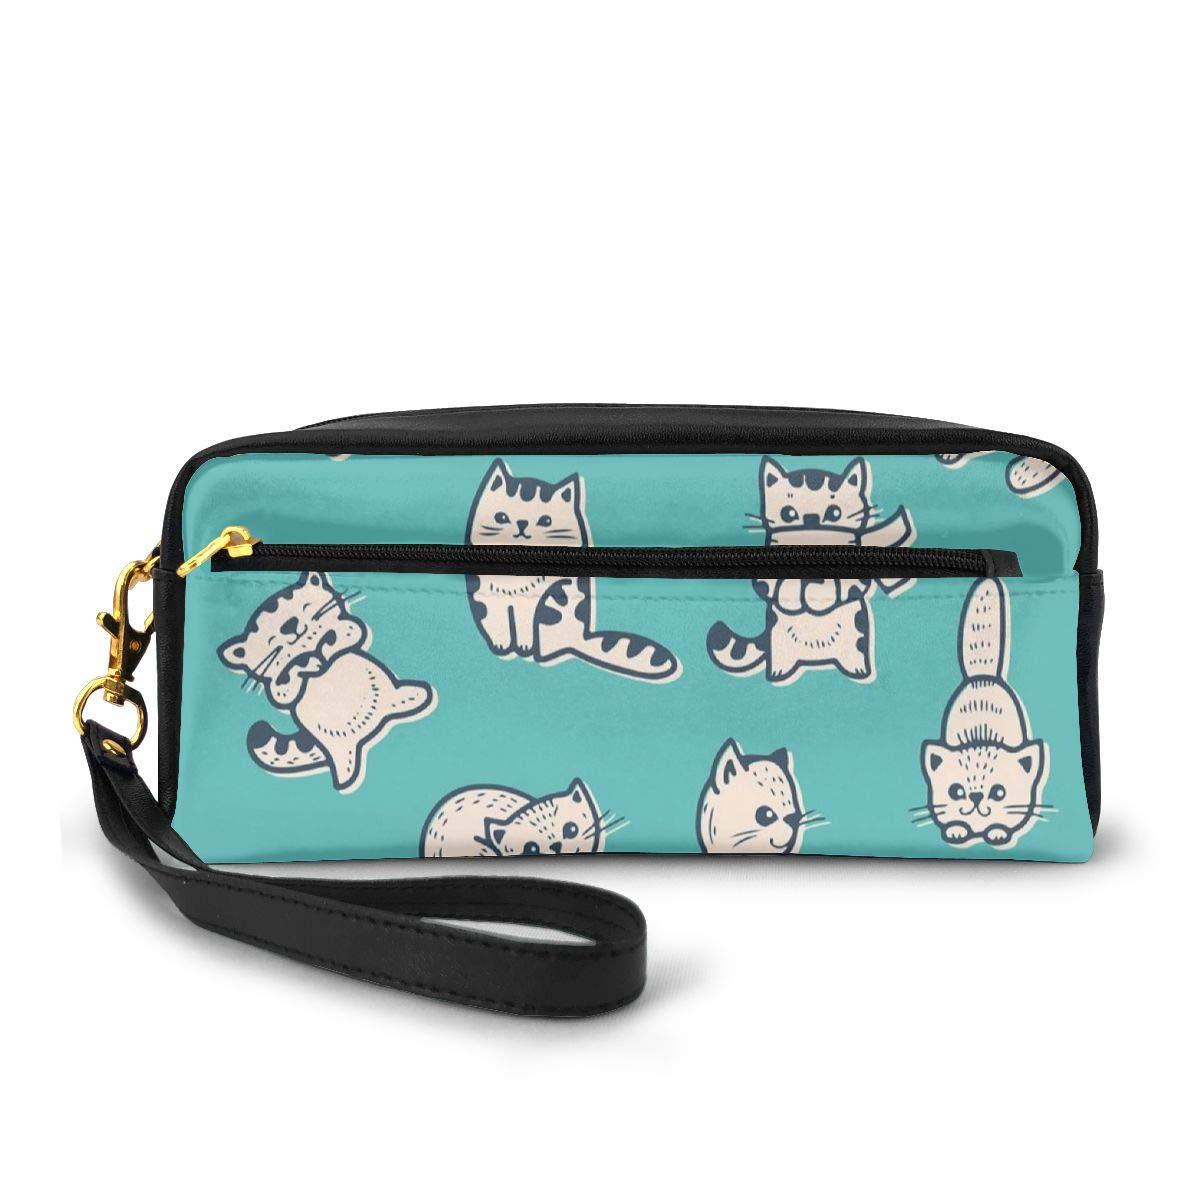 Pencil Case Pen Bag Pouch Stationary,Cute Kitties In Various Gestures Sleeping Playful Babyish Cat Animal Illustration,Small Makeup Bag Coin Purse